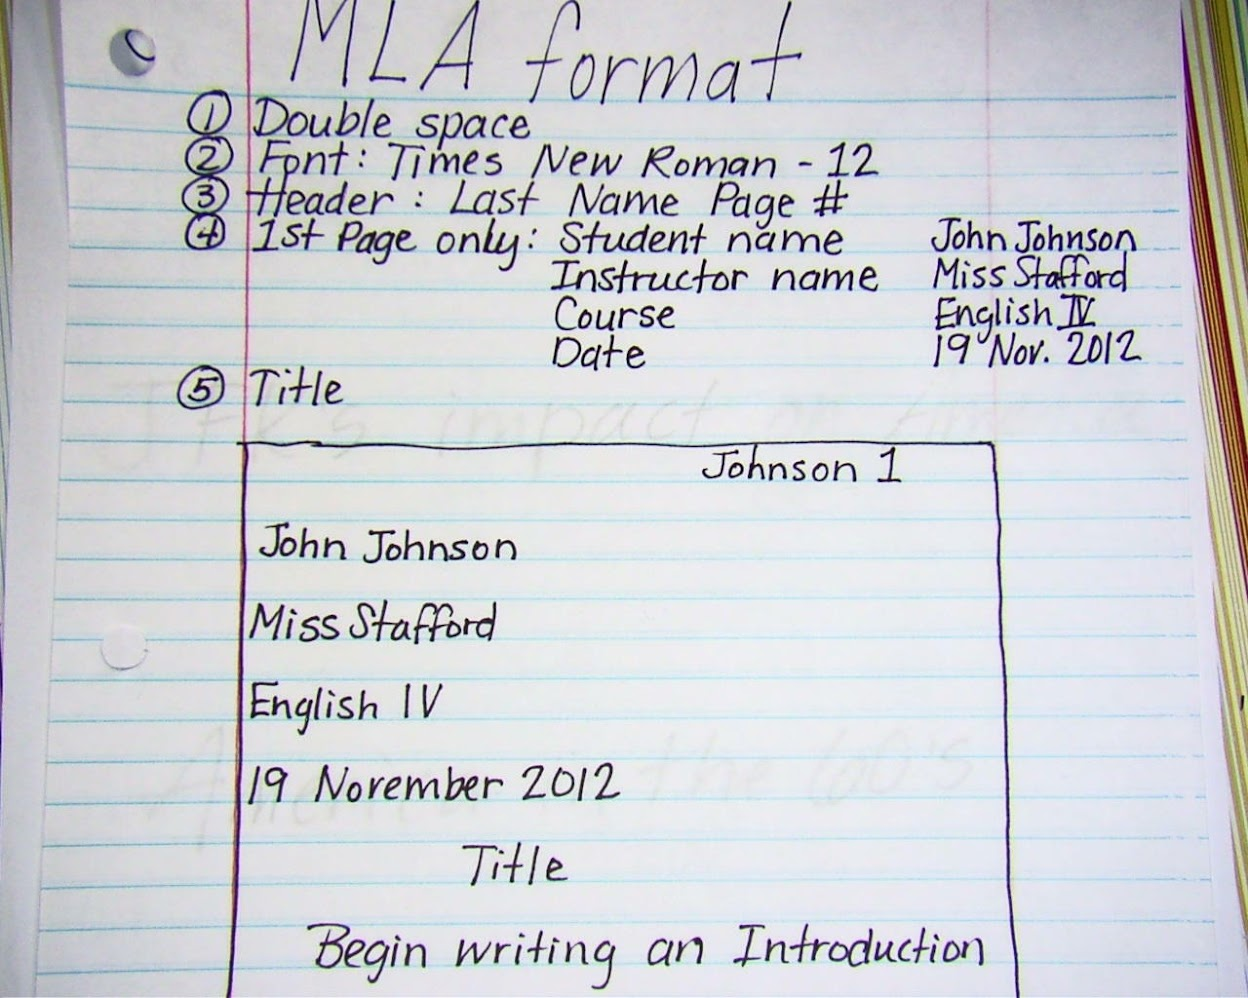 Apa Format Essay  APA Thesis Writing Help   nirop org LibGuides how do you write an essay in mla format how to write mla format ledger paper  ledger paper how to write a paper in mla